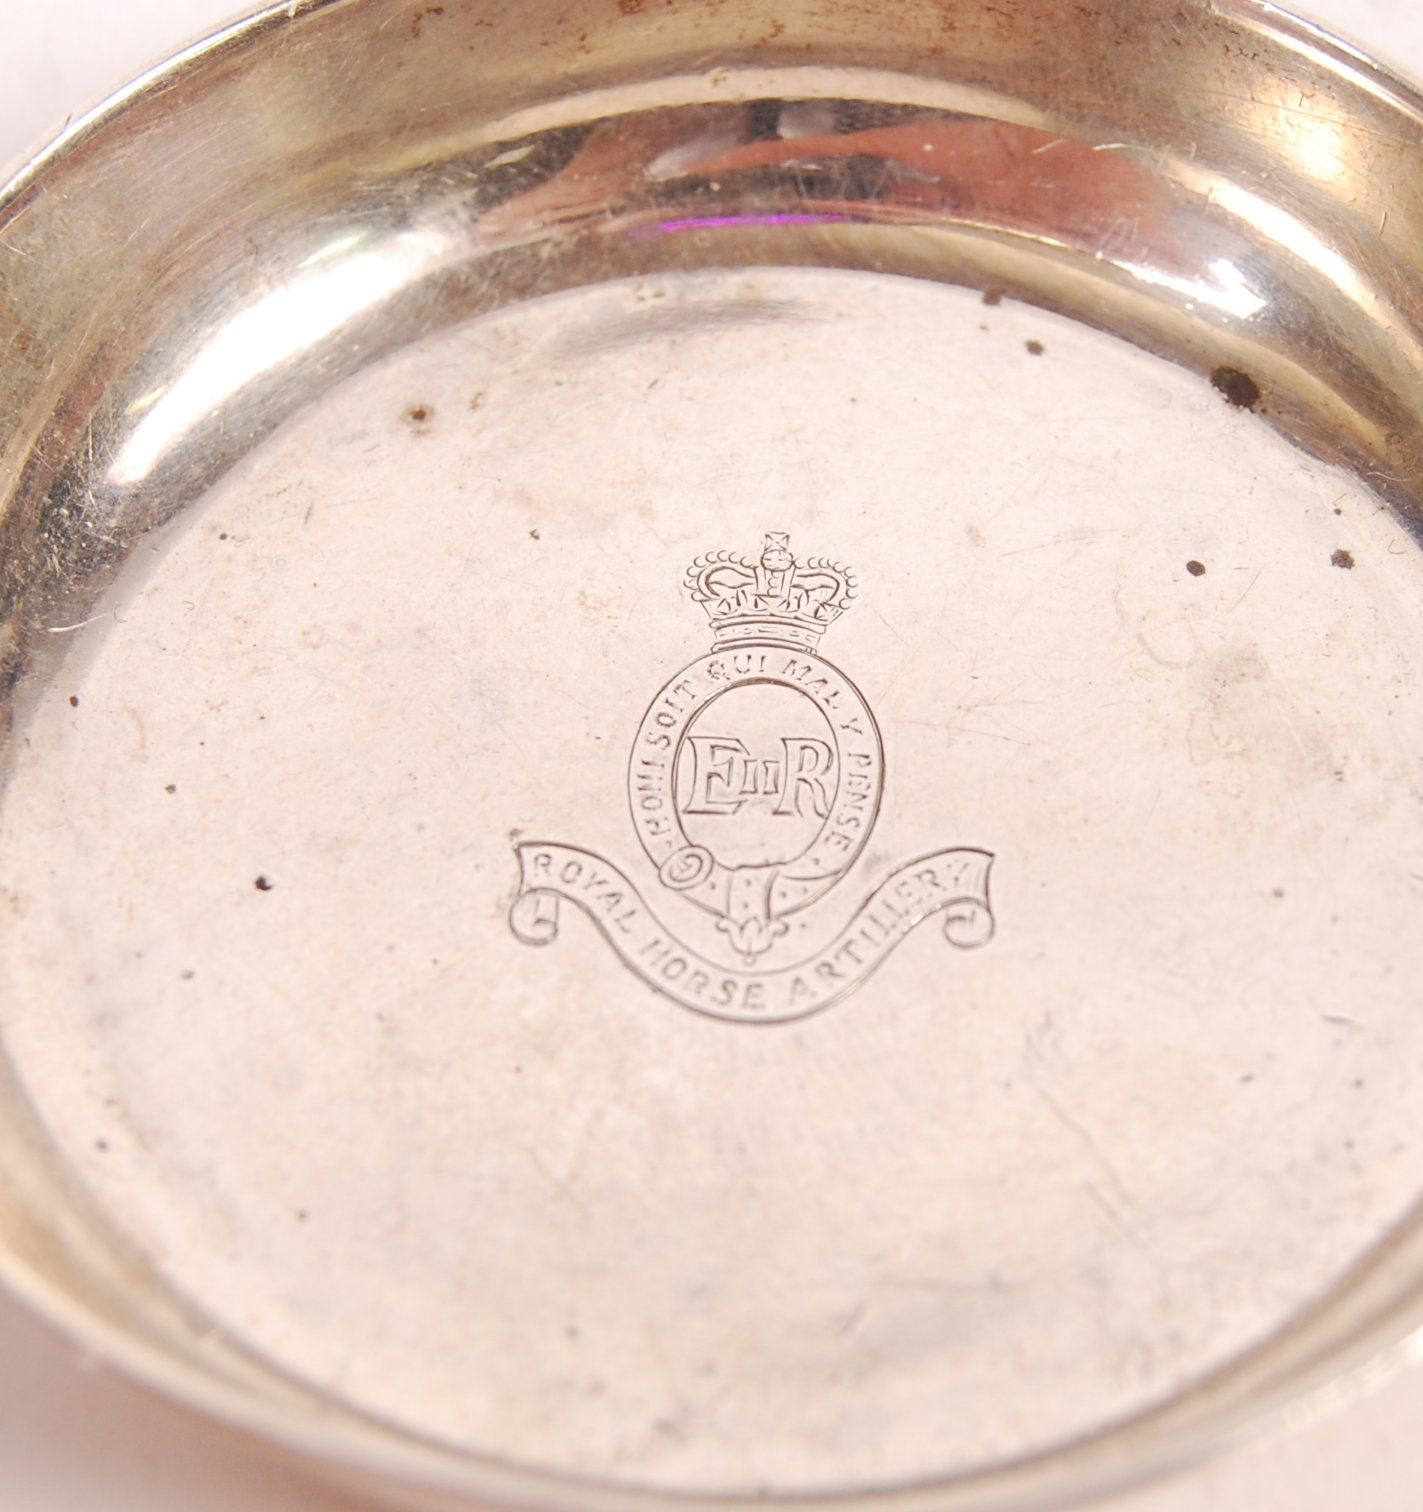 HALLMARKED SILVER MILITARY RELATED PIN DISHES - Image 3 of 5